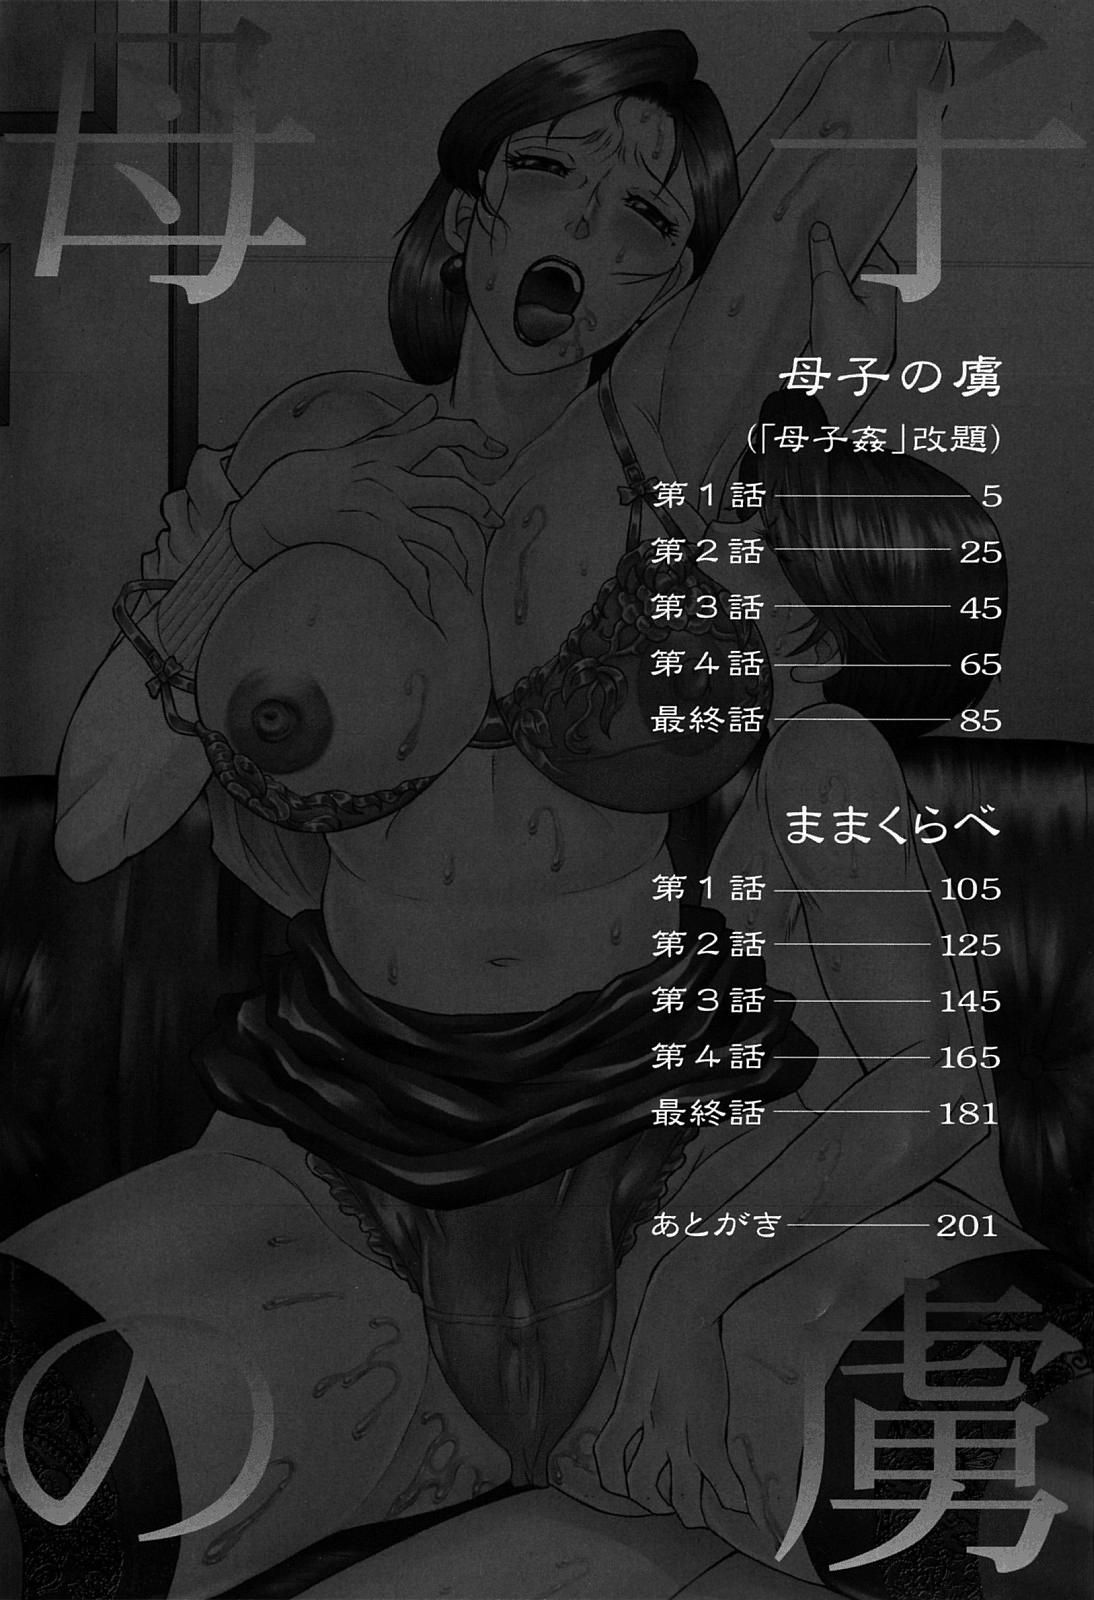 [Fuusen Club] Boshino Toriko - The Captive of Mother and the Son | Enslaved Mother and Son Ch. 1-5 [English] [SaHa] 3